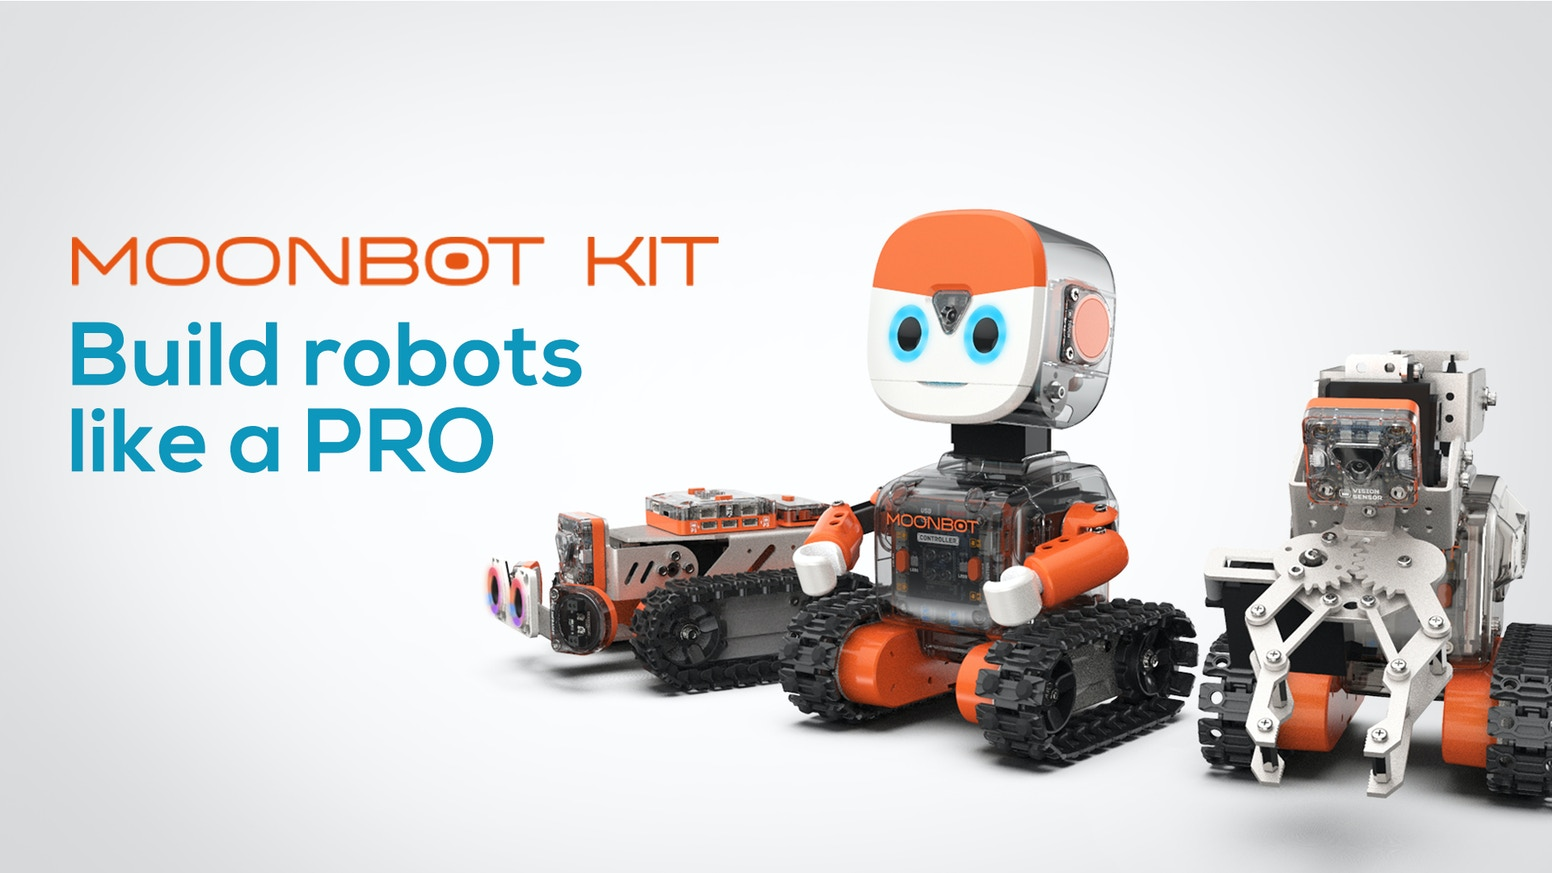 Build robots like a PRO with this Arduino compatible kit